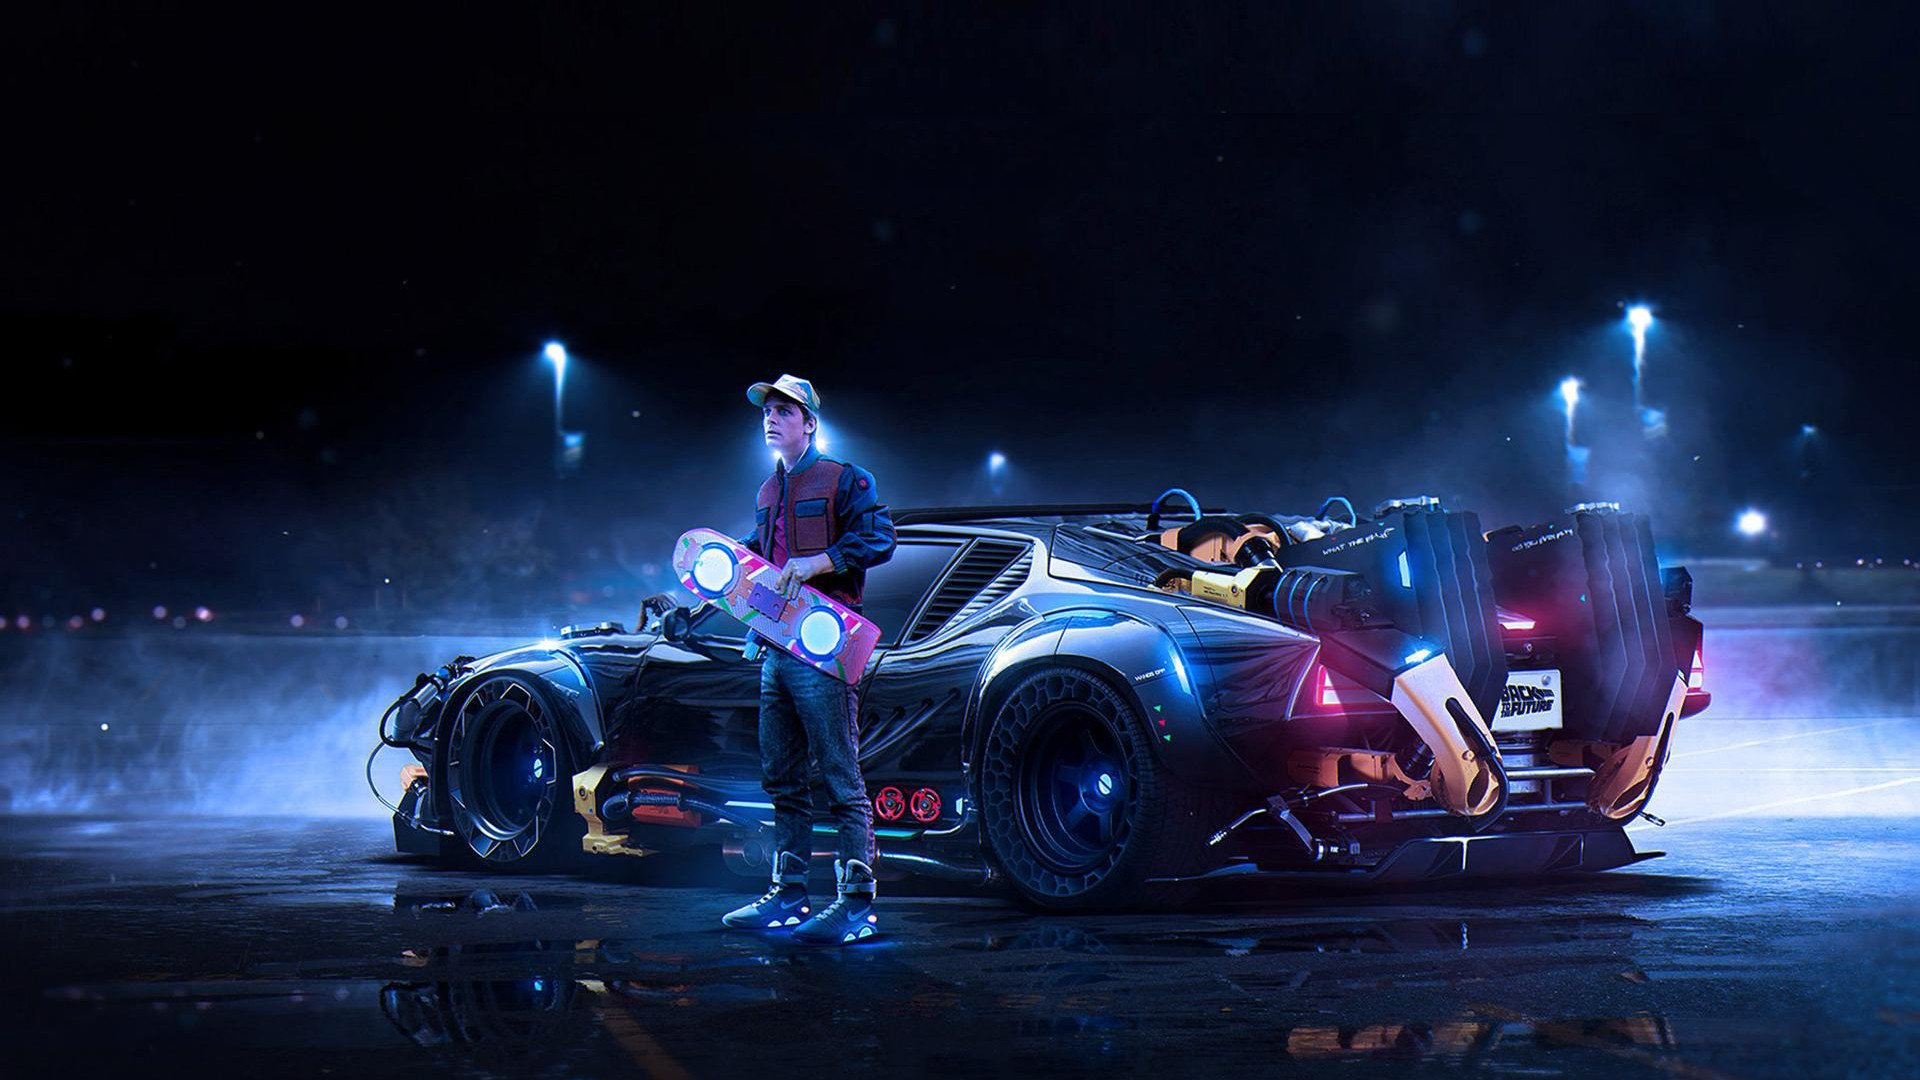 Wallpaper of Back To The Future DeLorean Marty McFly background 1920x1080